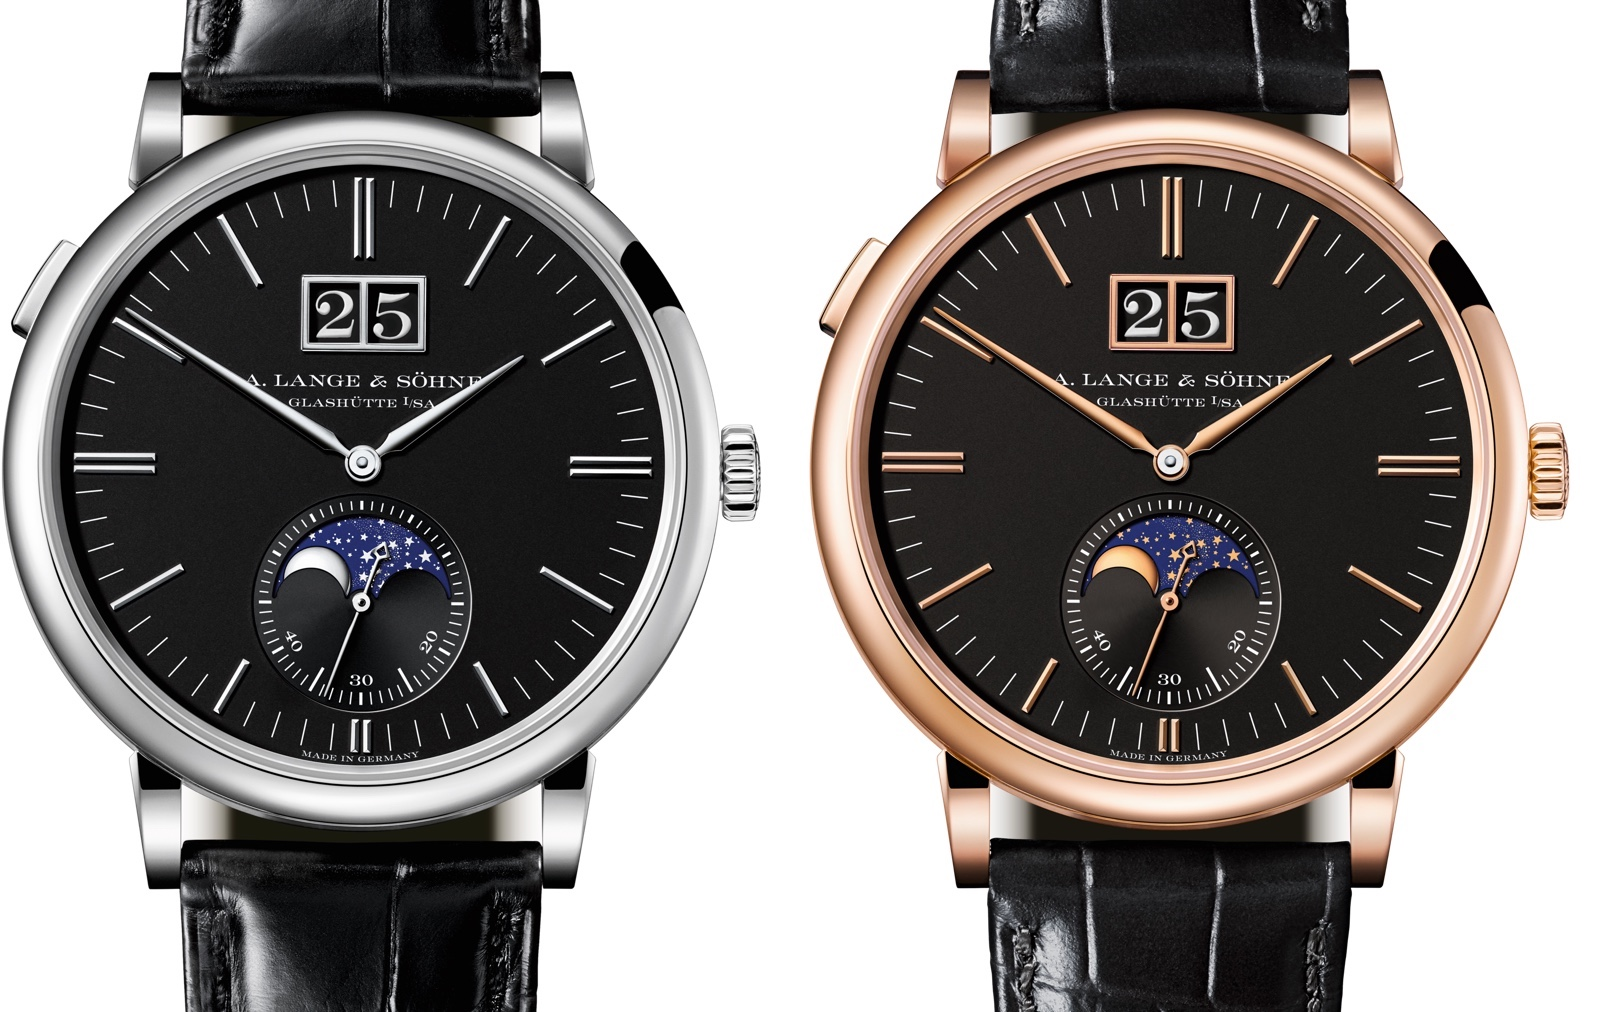 A. Lange & Sohne Saxonia Moon Phase SIHH 2018